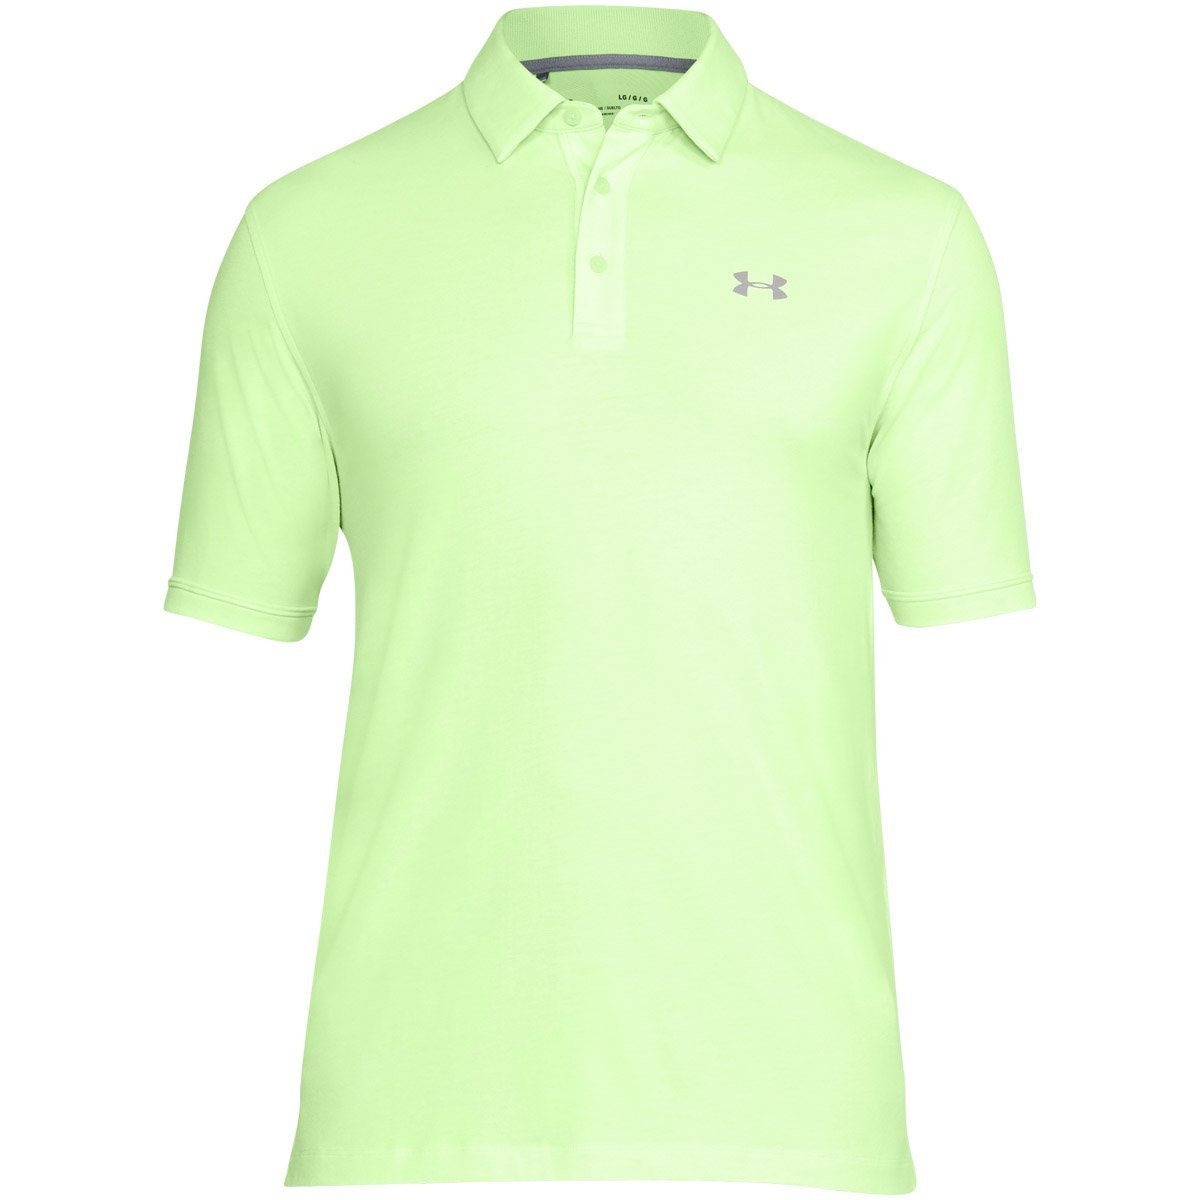 Under Armour Men's Charged Cotton Scramble Polo Under Armour Apparel 1281003